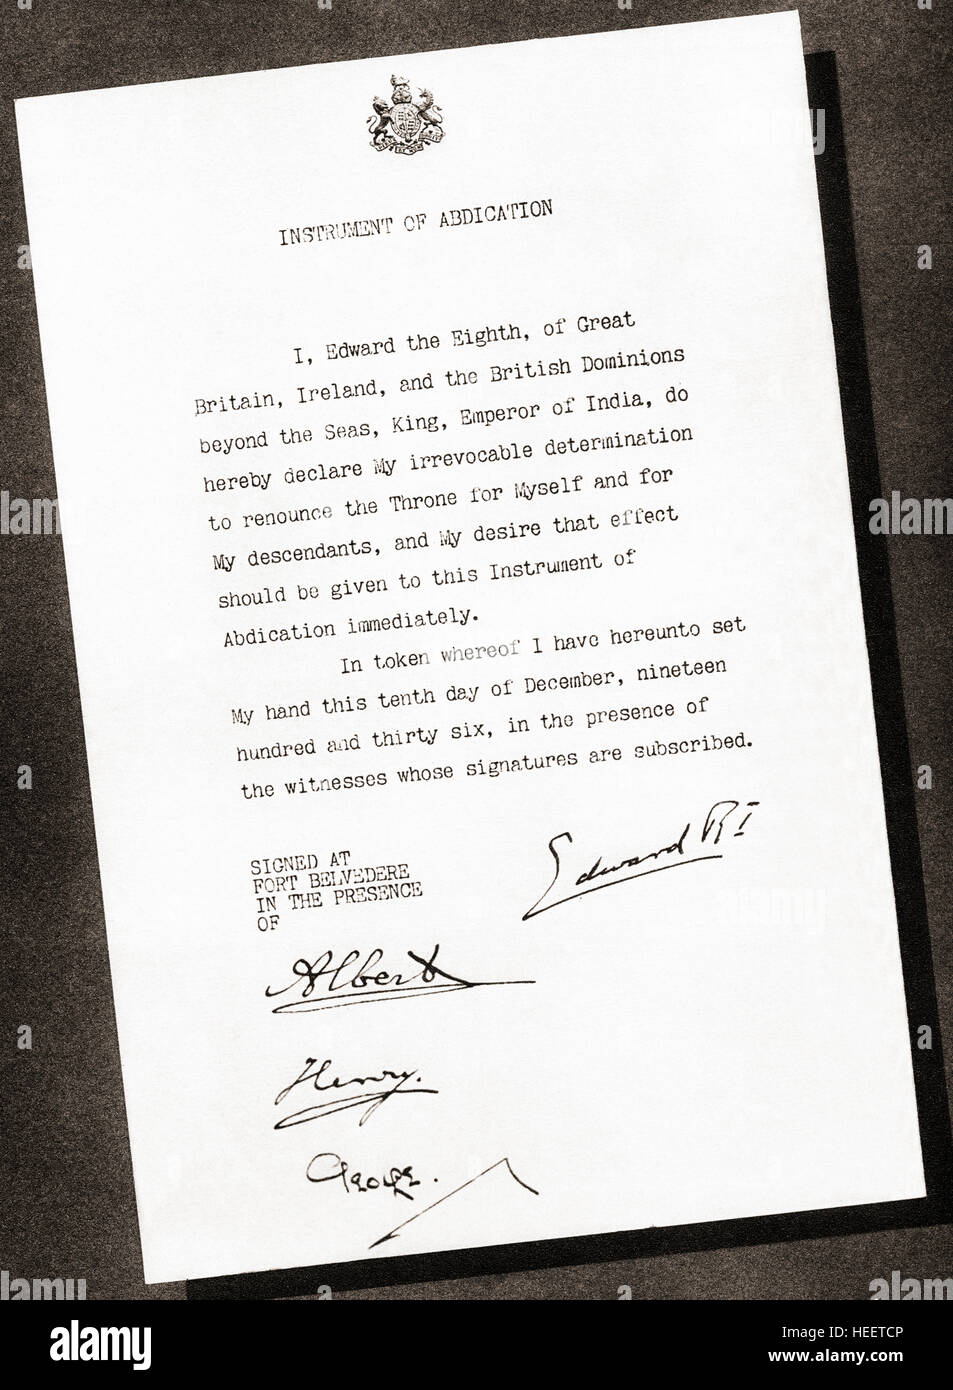 Instrument of Abdication signed in 1936 by King Edward VIII and his three brothers, Prince Albert future George - Stock Image